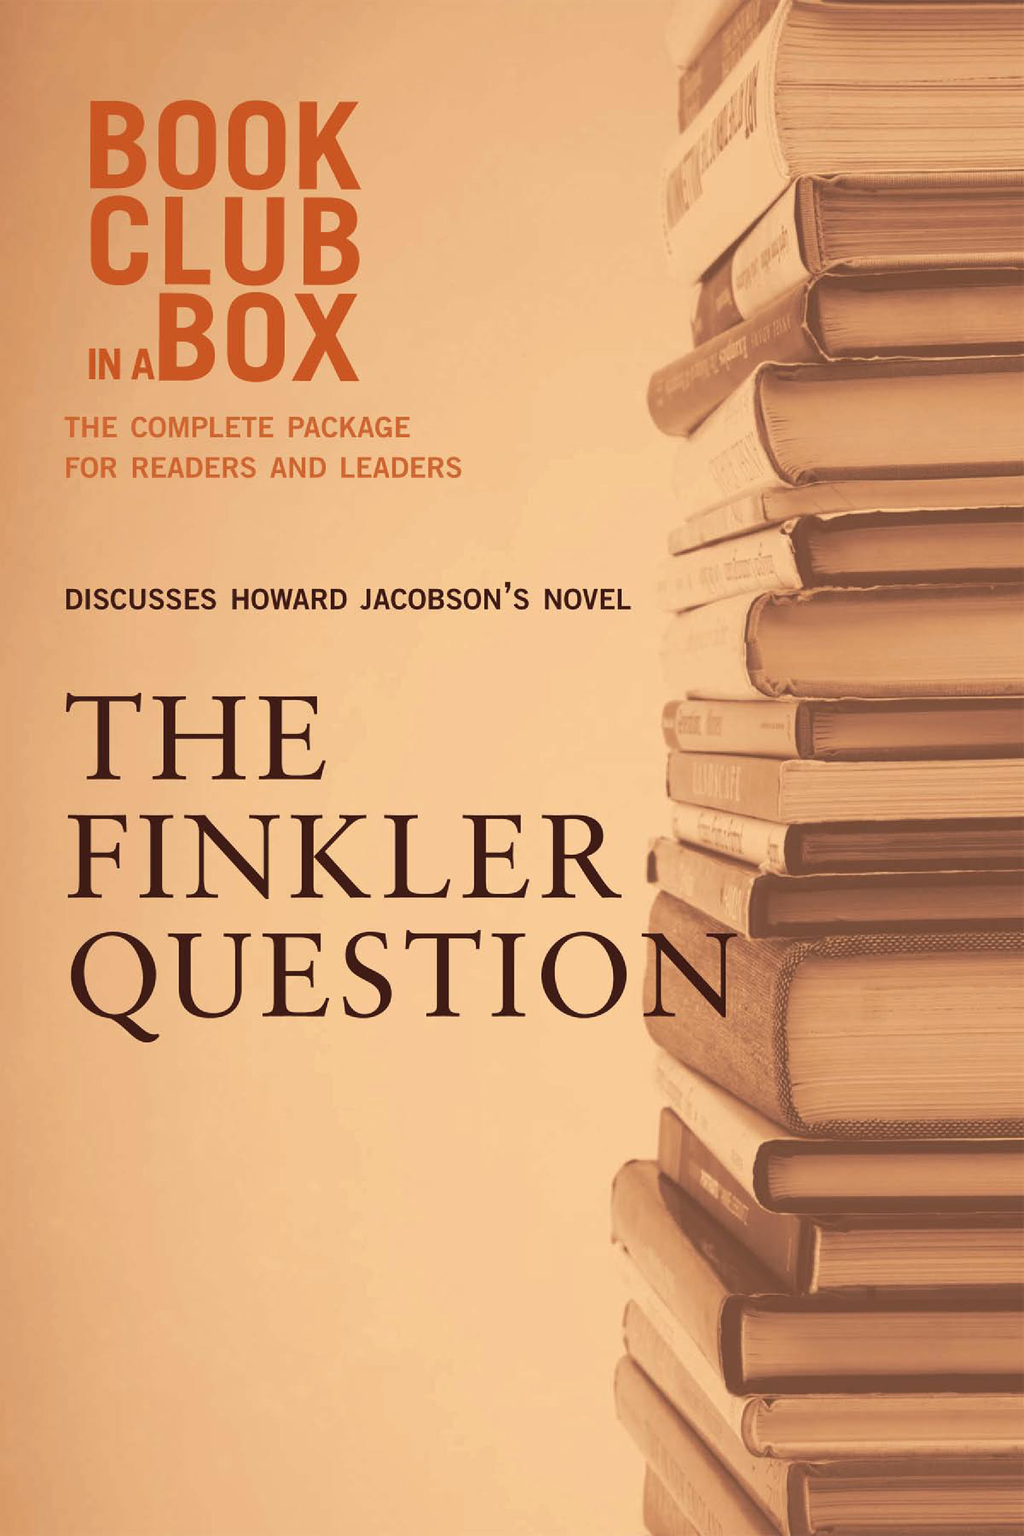 Bookclub-in-a-Box Discusses The Finkler Question, by Howard Jacobson